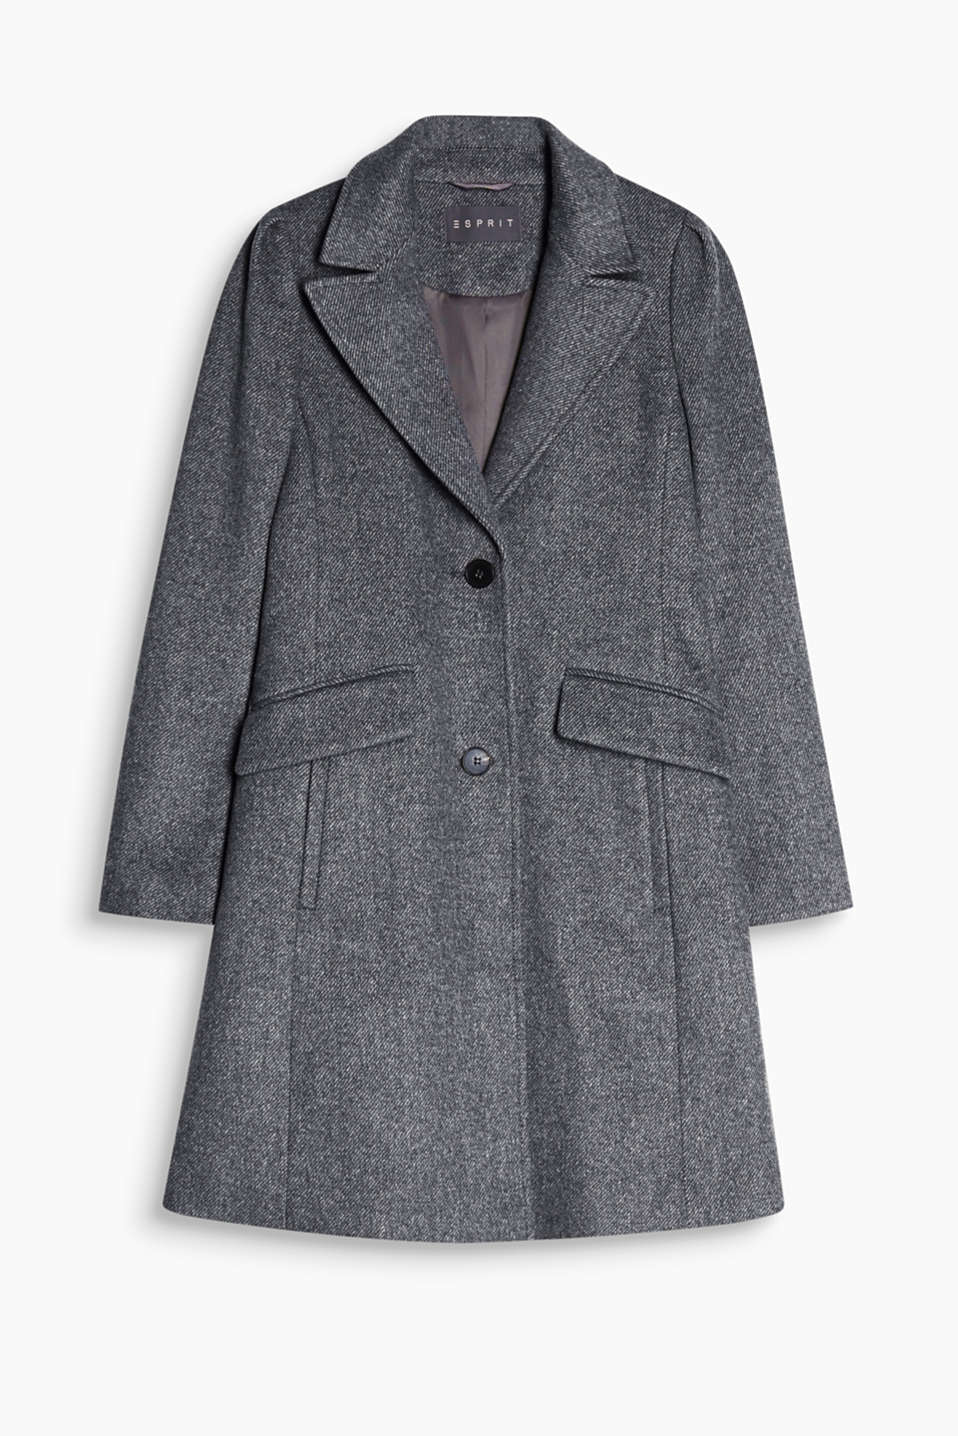 Modern business chic: fitted blazer coat in a finely striped wool blend with puff sleeves and a wide lapel